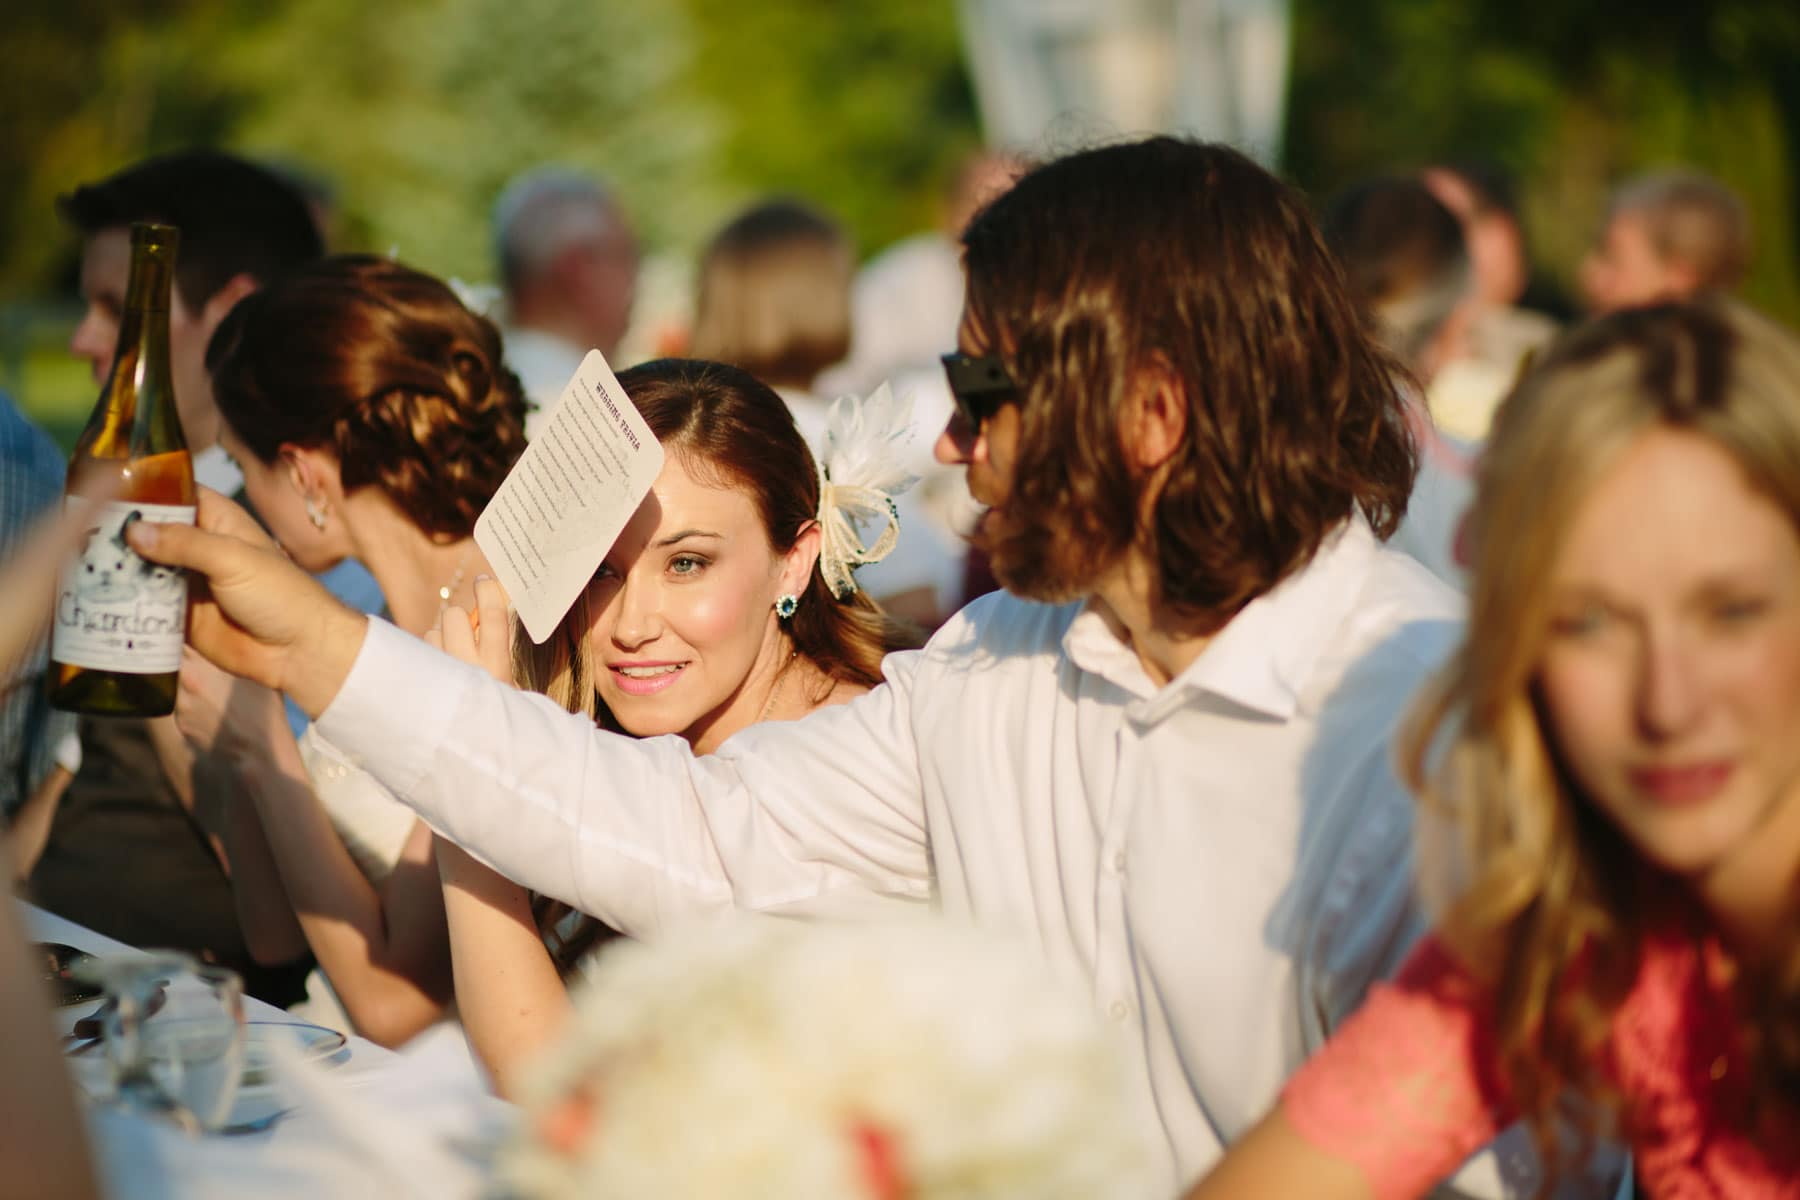 A man passes a bottle of wine and a woman uses menu to shield the sun from her eyes in these backyard wedding photos.